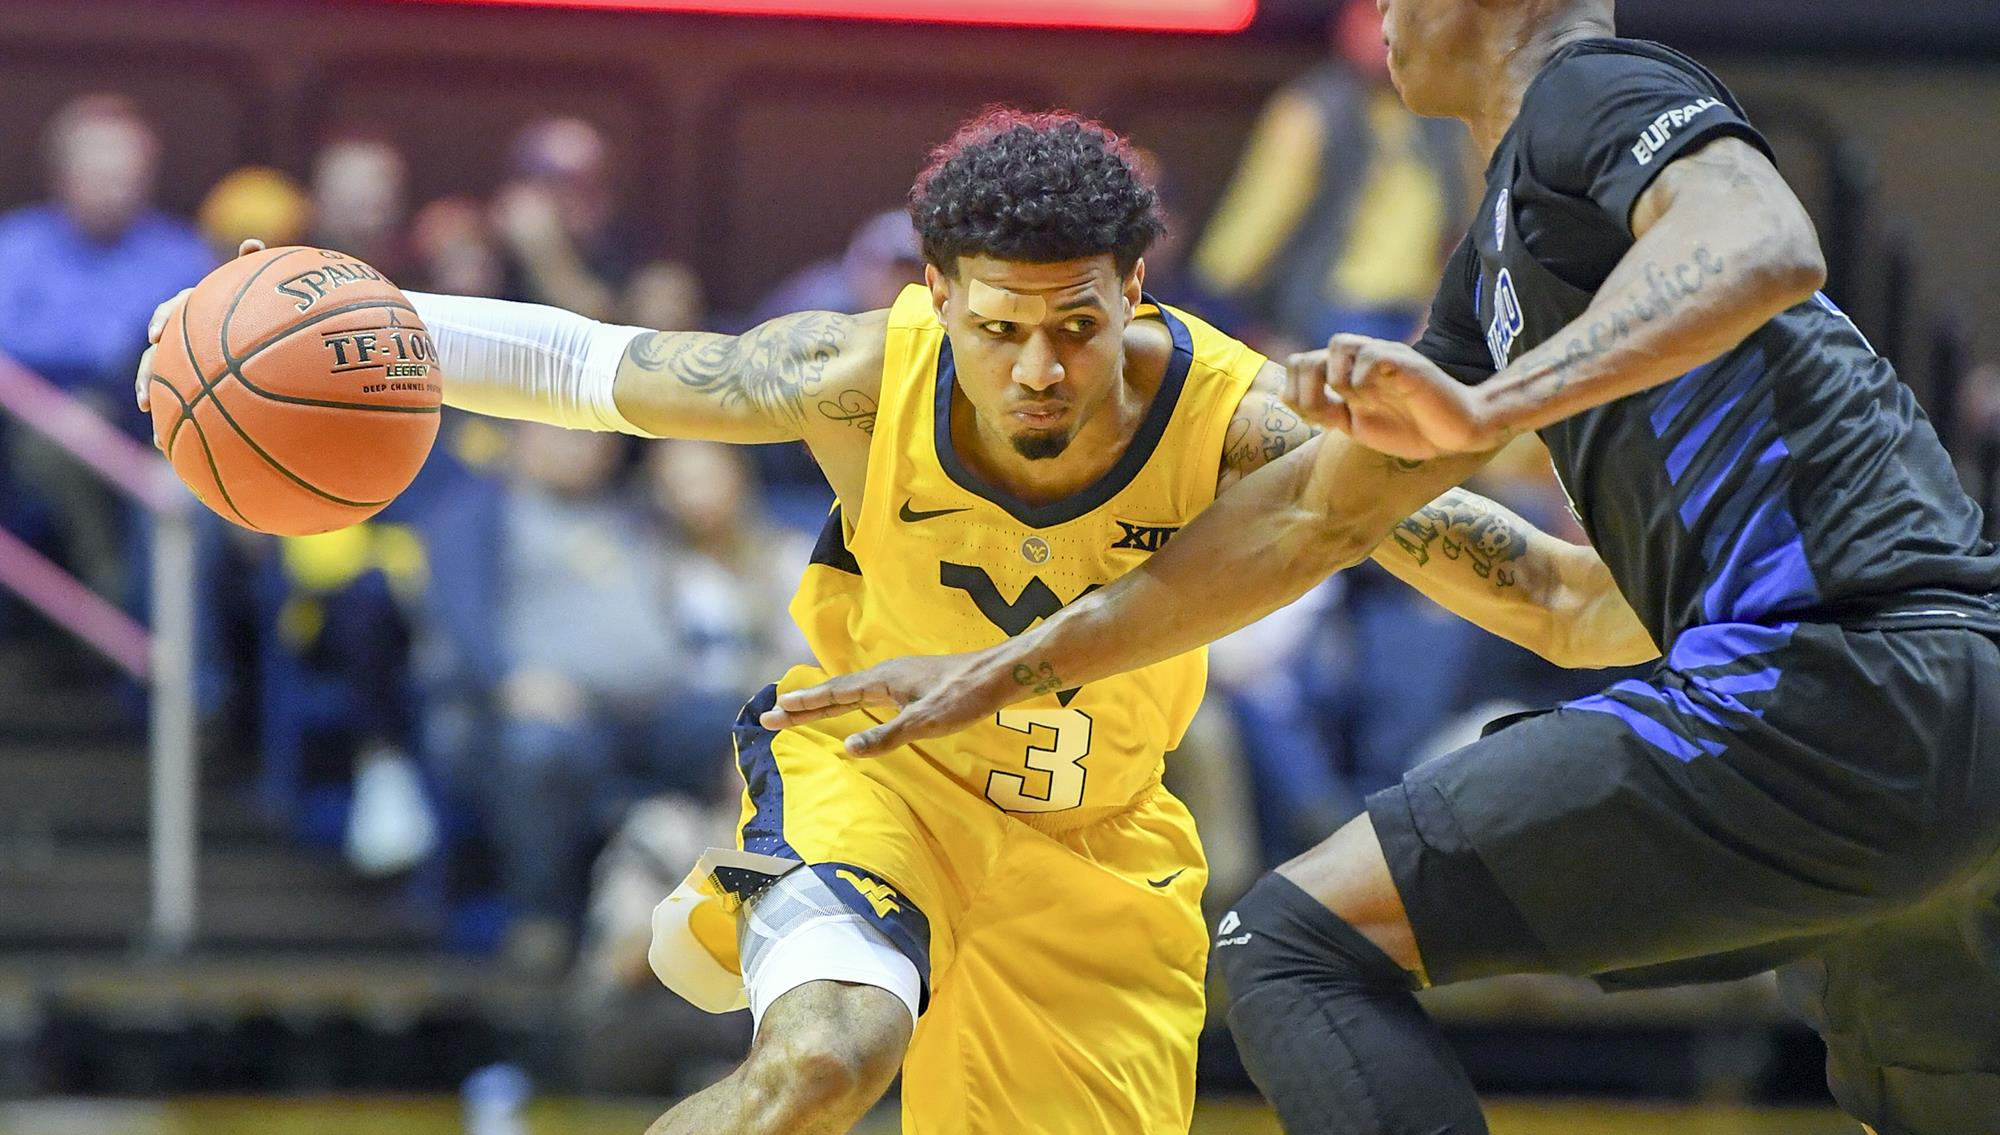 e9a4bd74bf6 Mountaineers Drop Opener In Overtime - West Virginia University ...